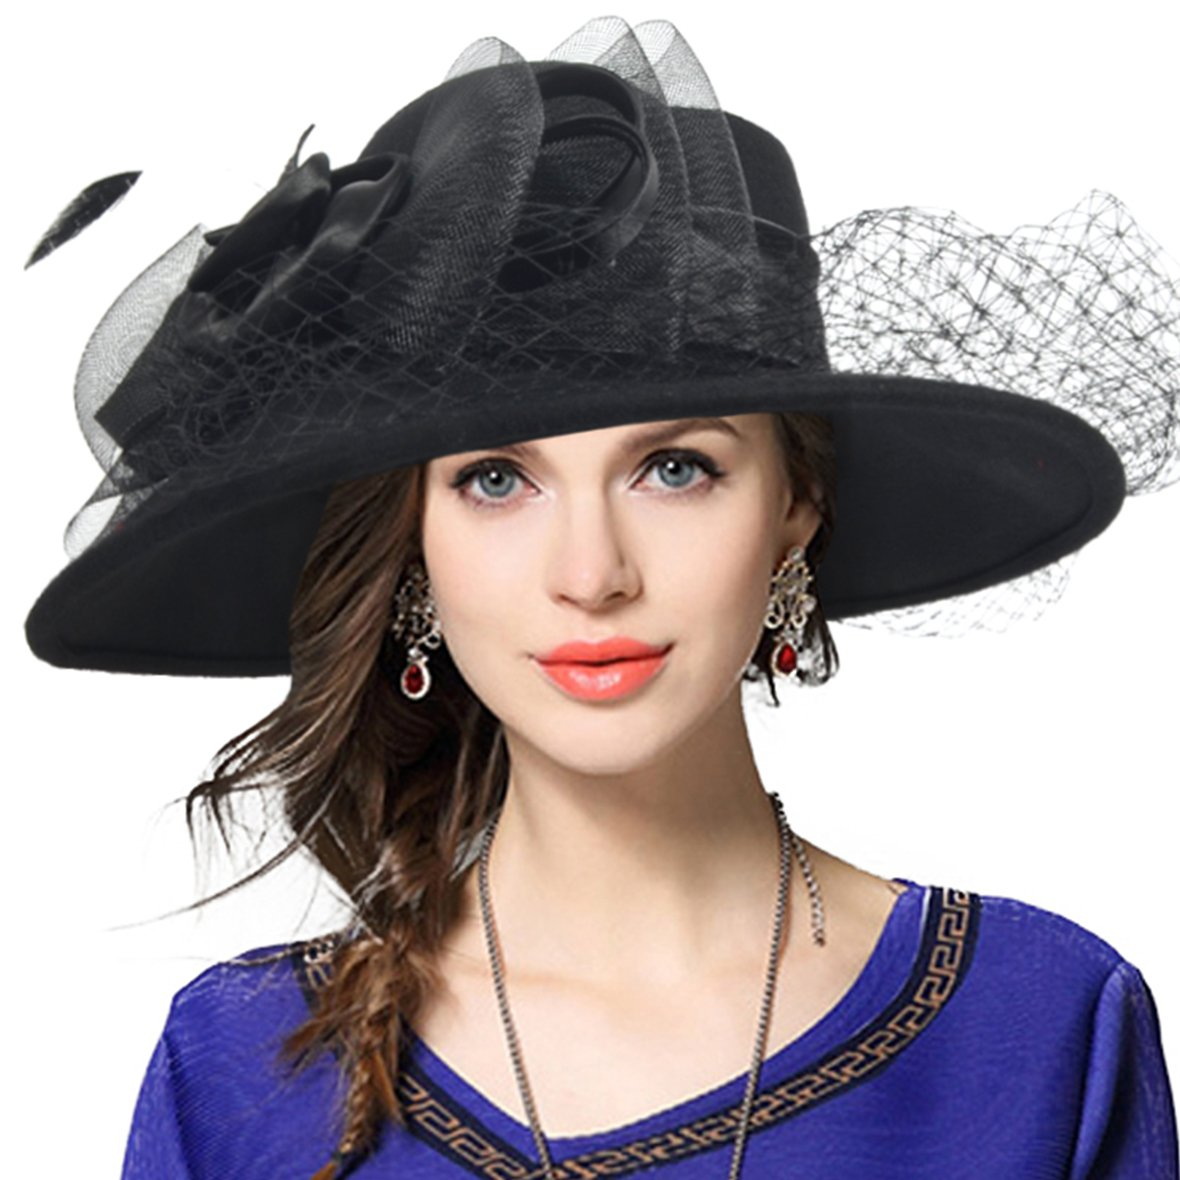 Hippie Hats,  70s Hats VECRY Womens Fascinator Wool Felt Hat Cocktail Party Wedding Fedora Hats $32.87 AT vintagedancer.com